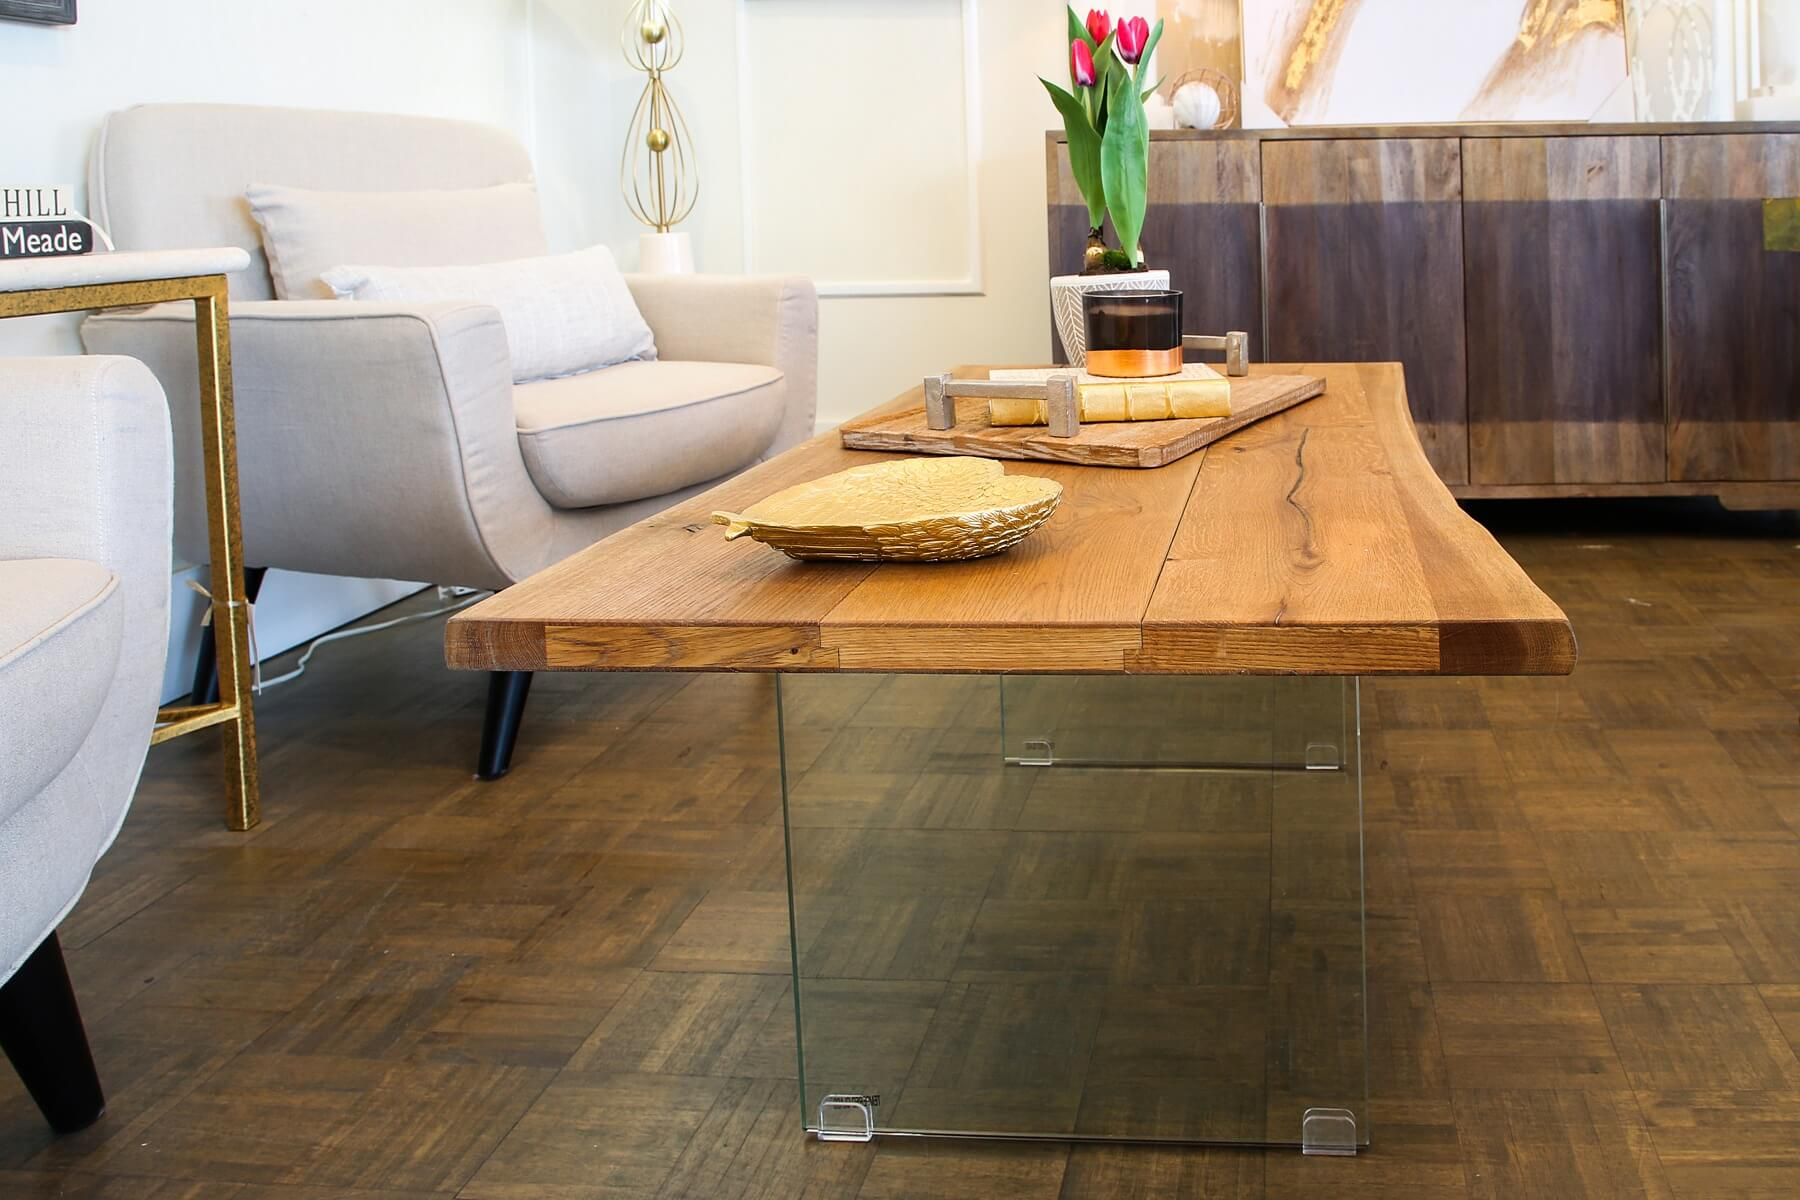 acrylic table — interior design trends